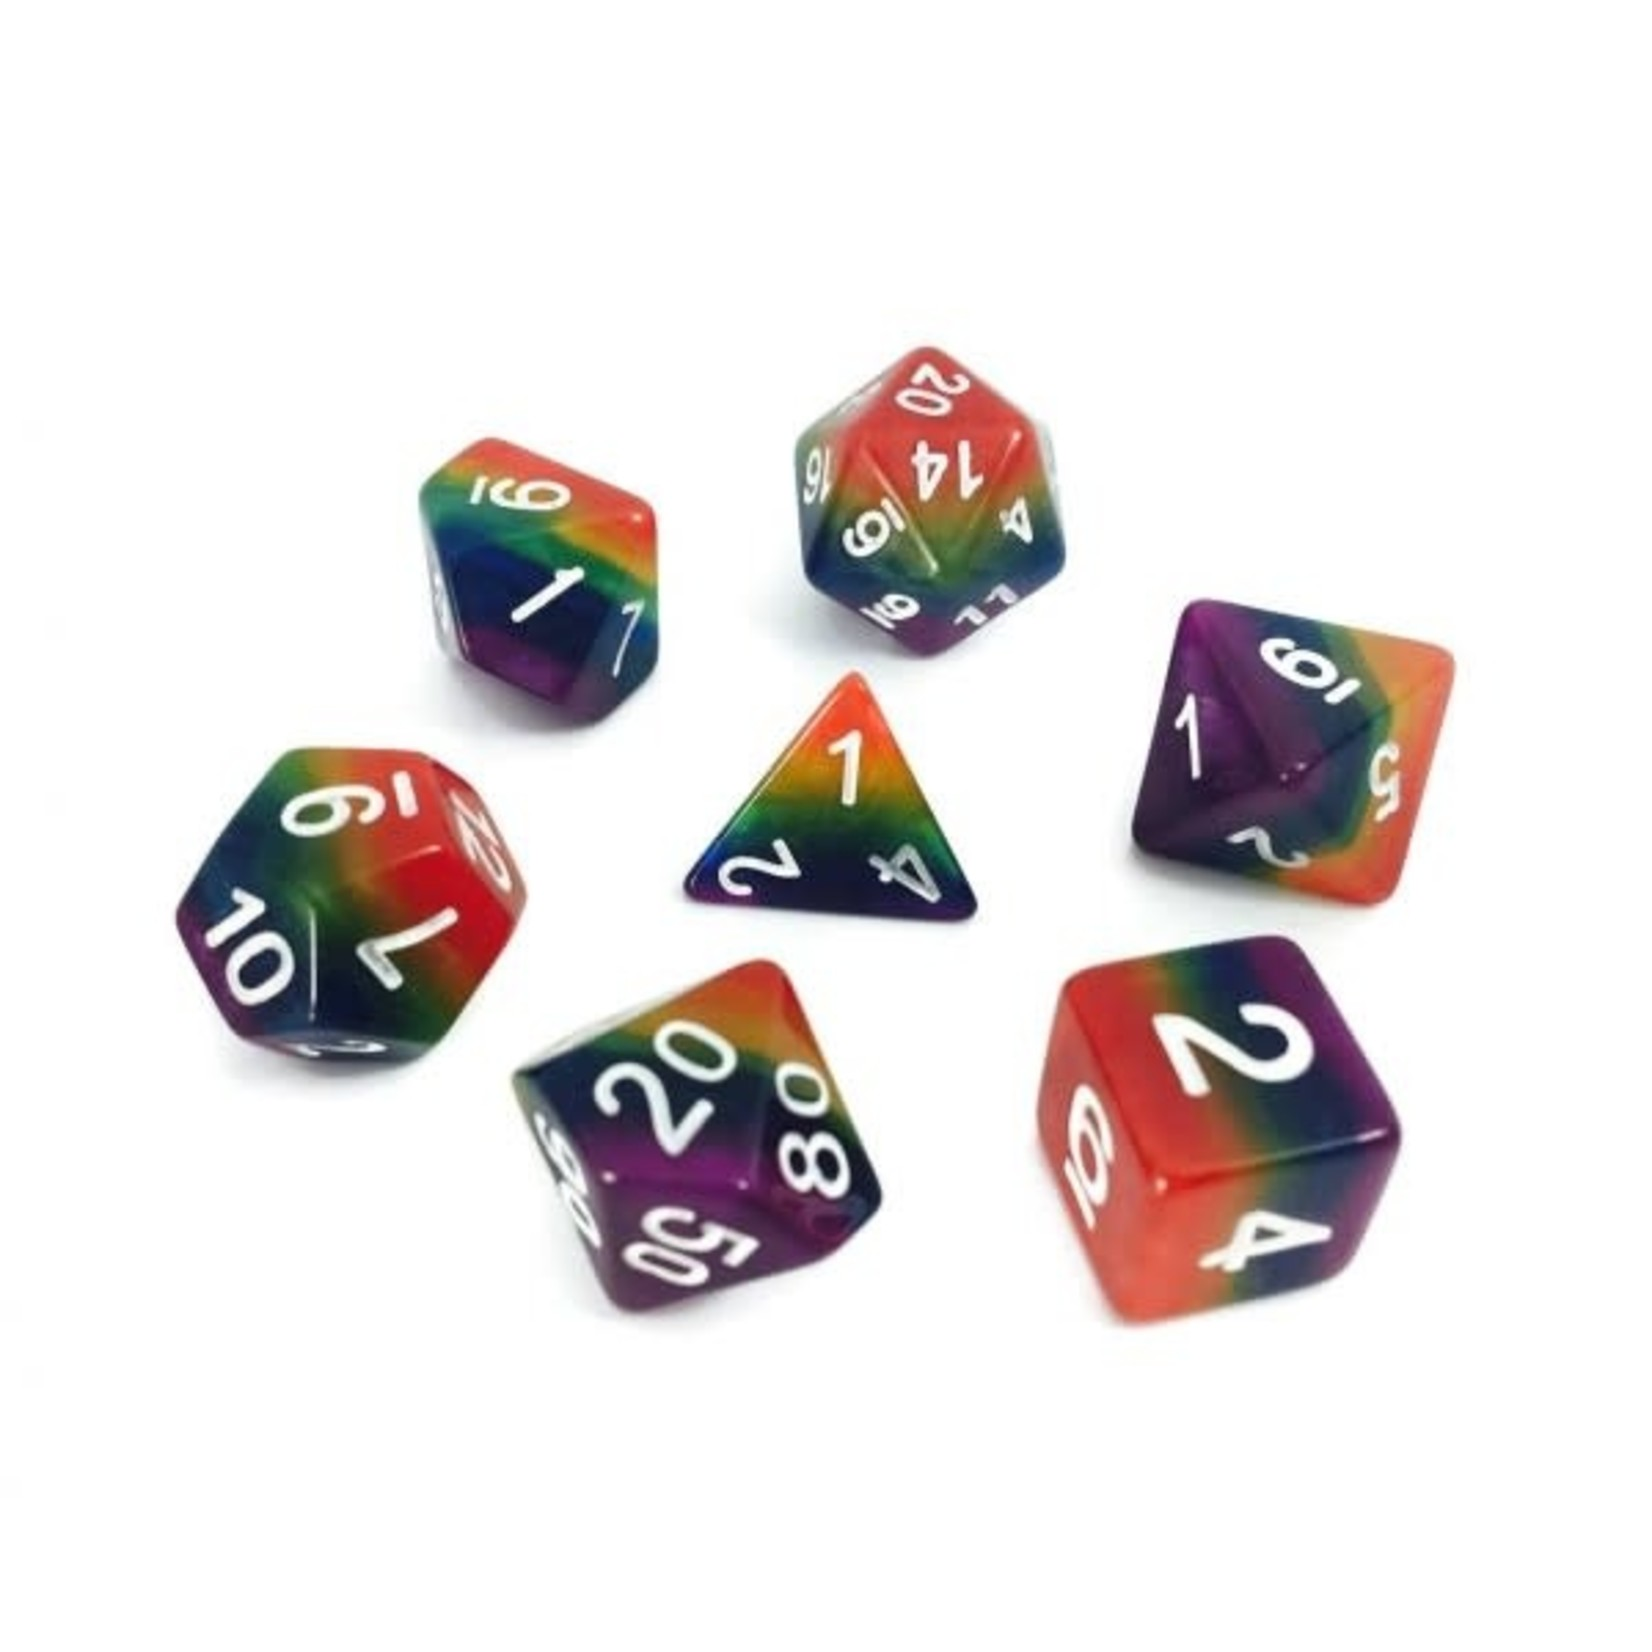 HD Dice Dice: 7-Set Gradient Rainbow with White Numbers (HD)